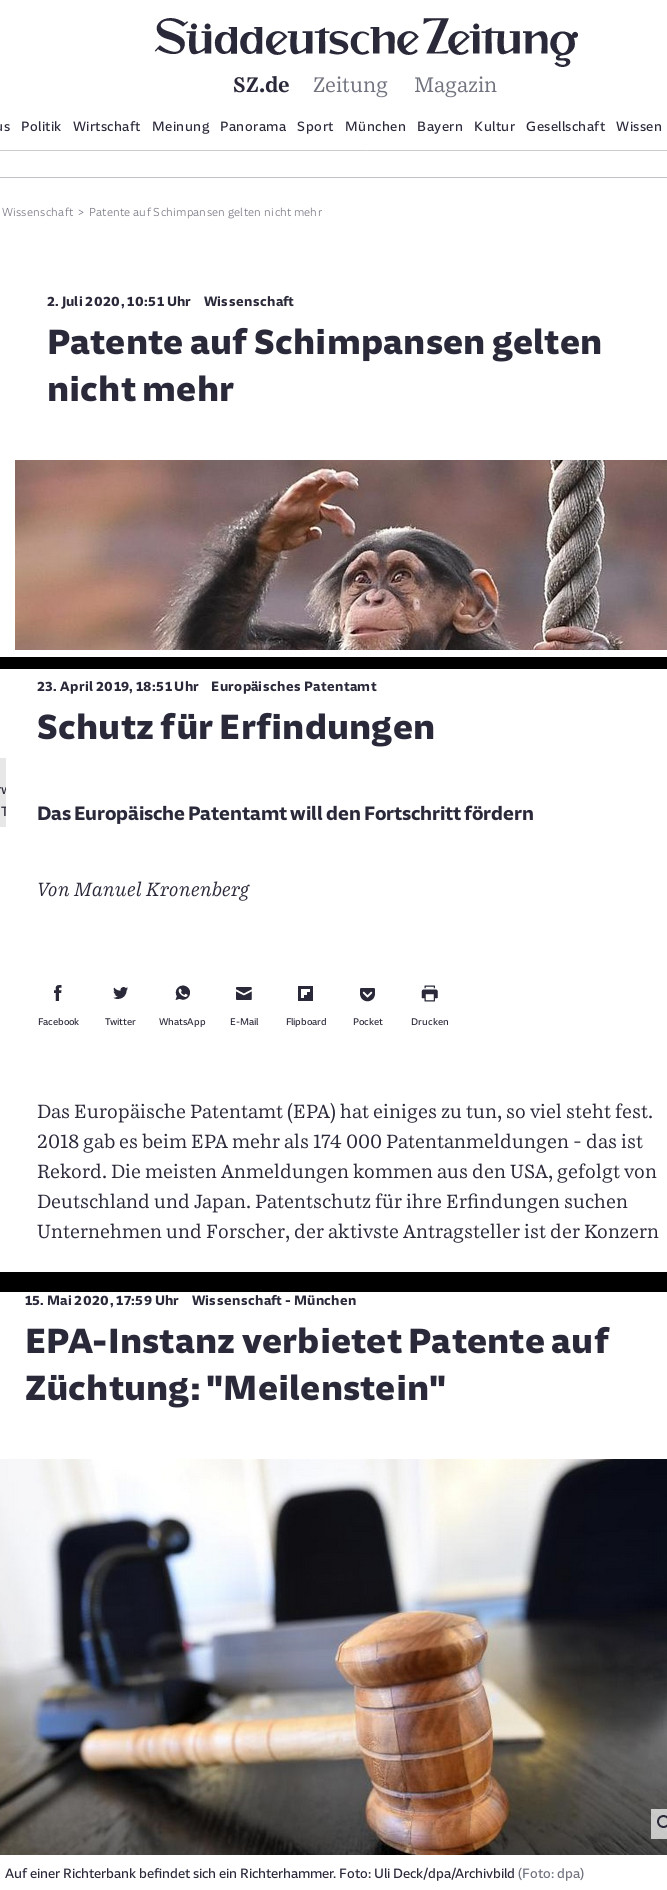 SZ coverage of EPO affairs these days